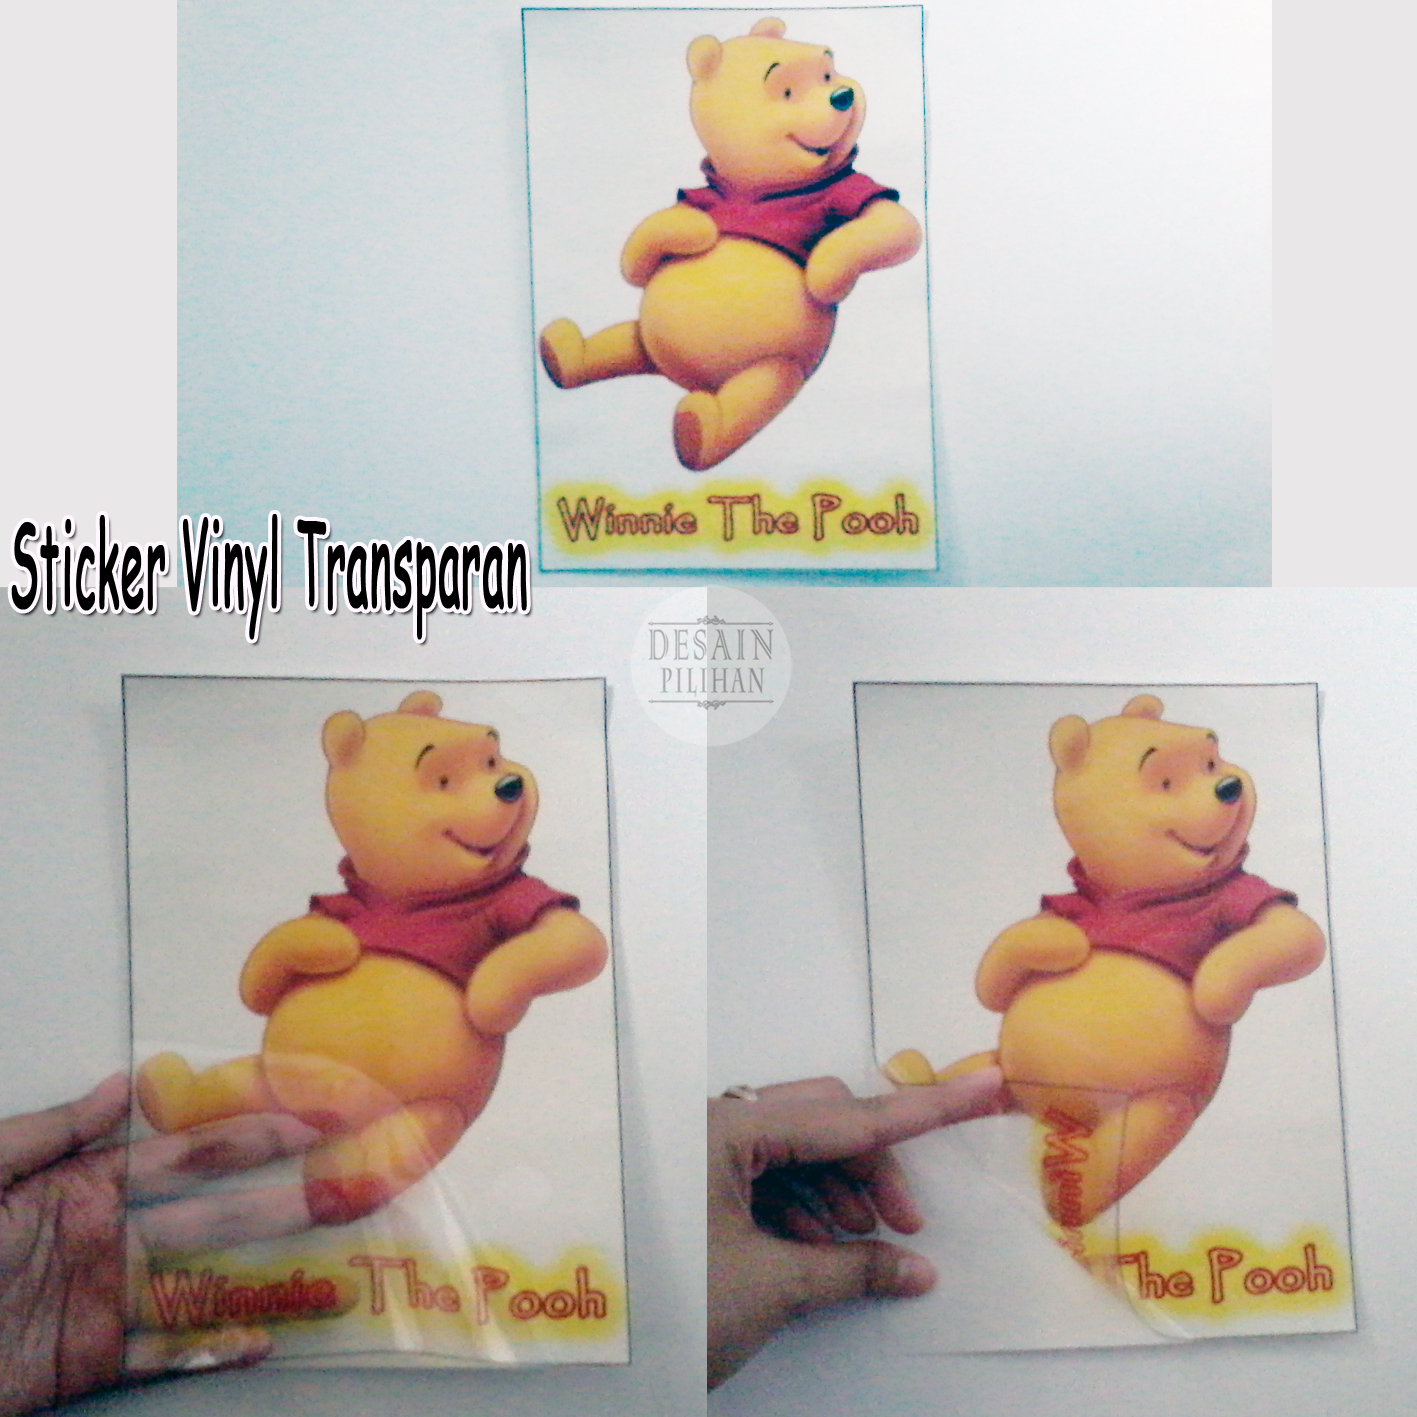 contoh sticker vinyl transparan, jual sticker vinyl transparan